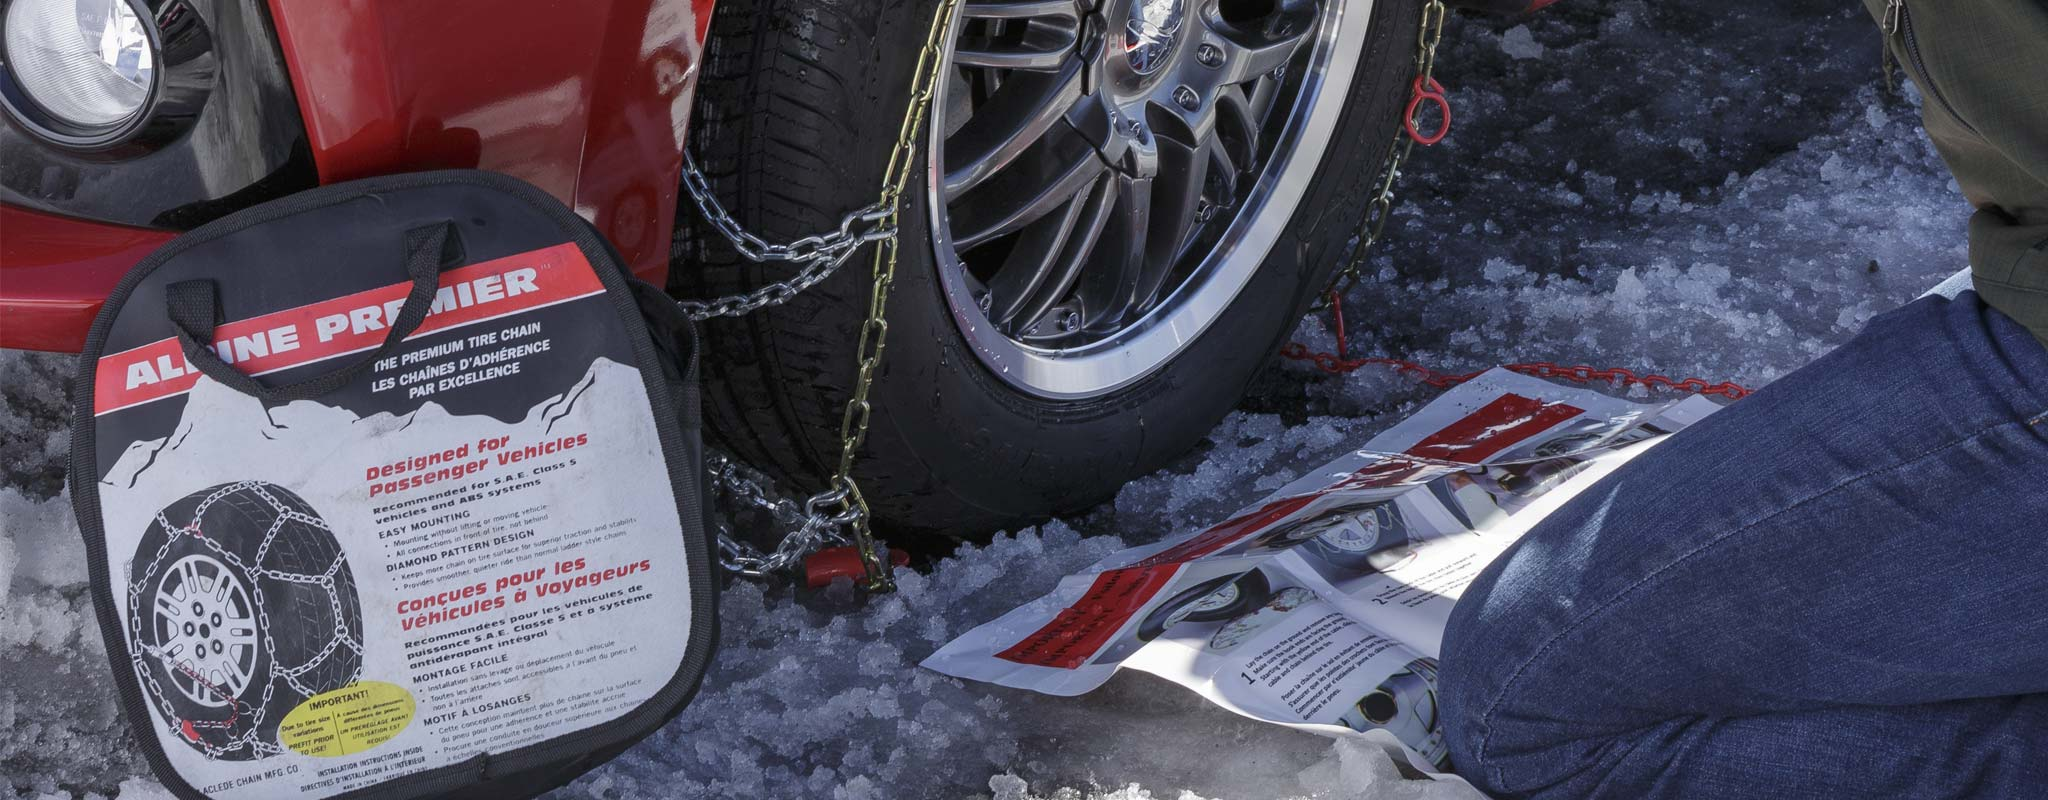 A person putting snow chains on their passenger vehicle.